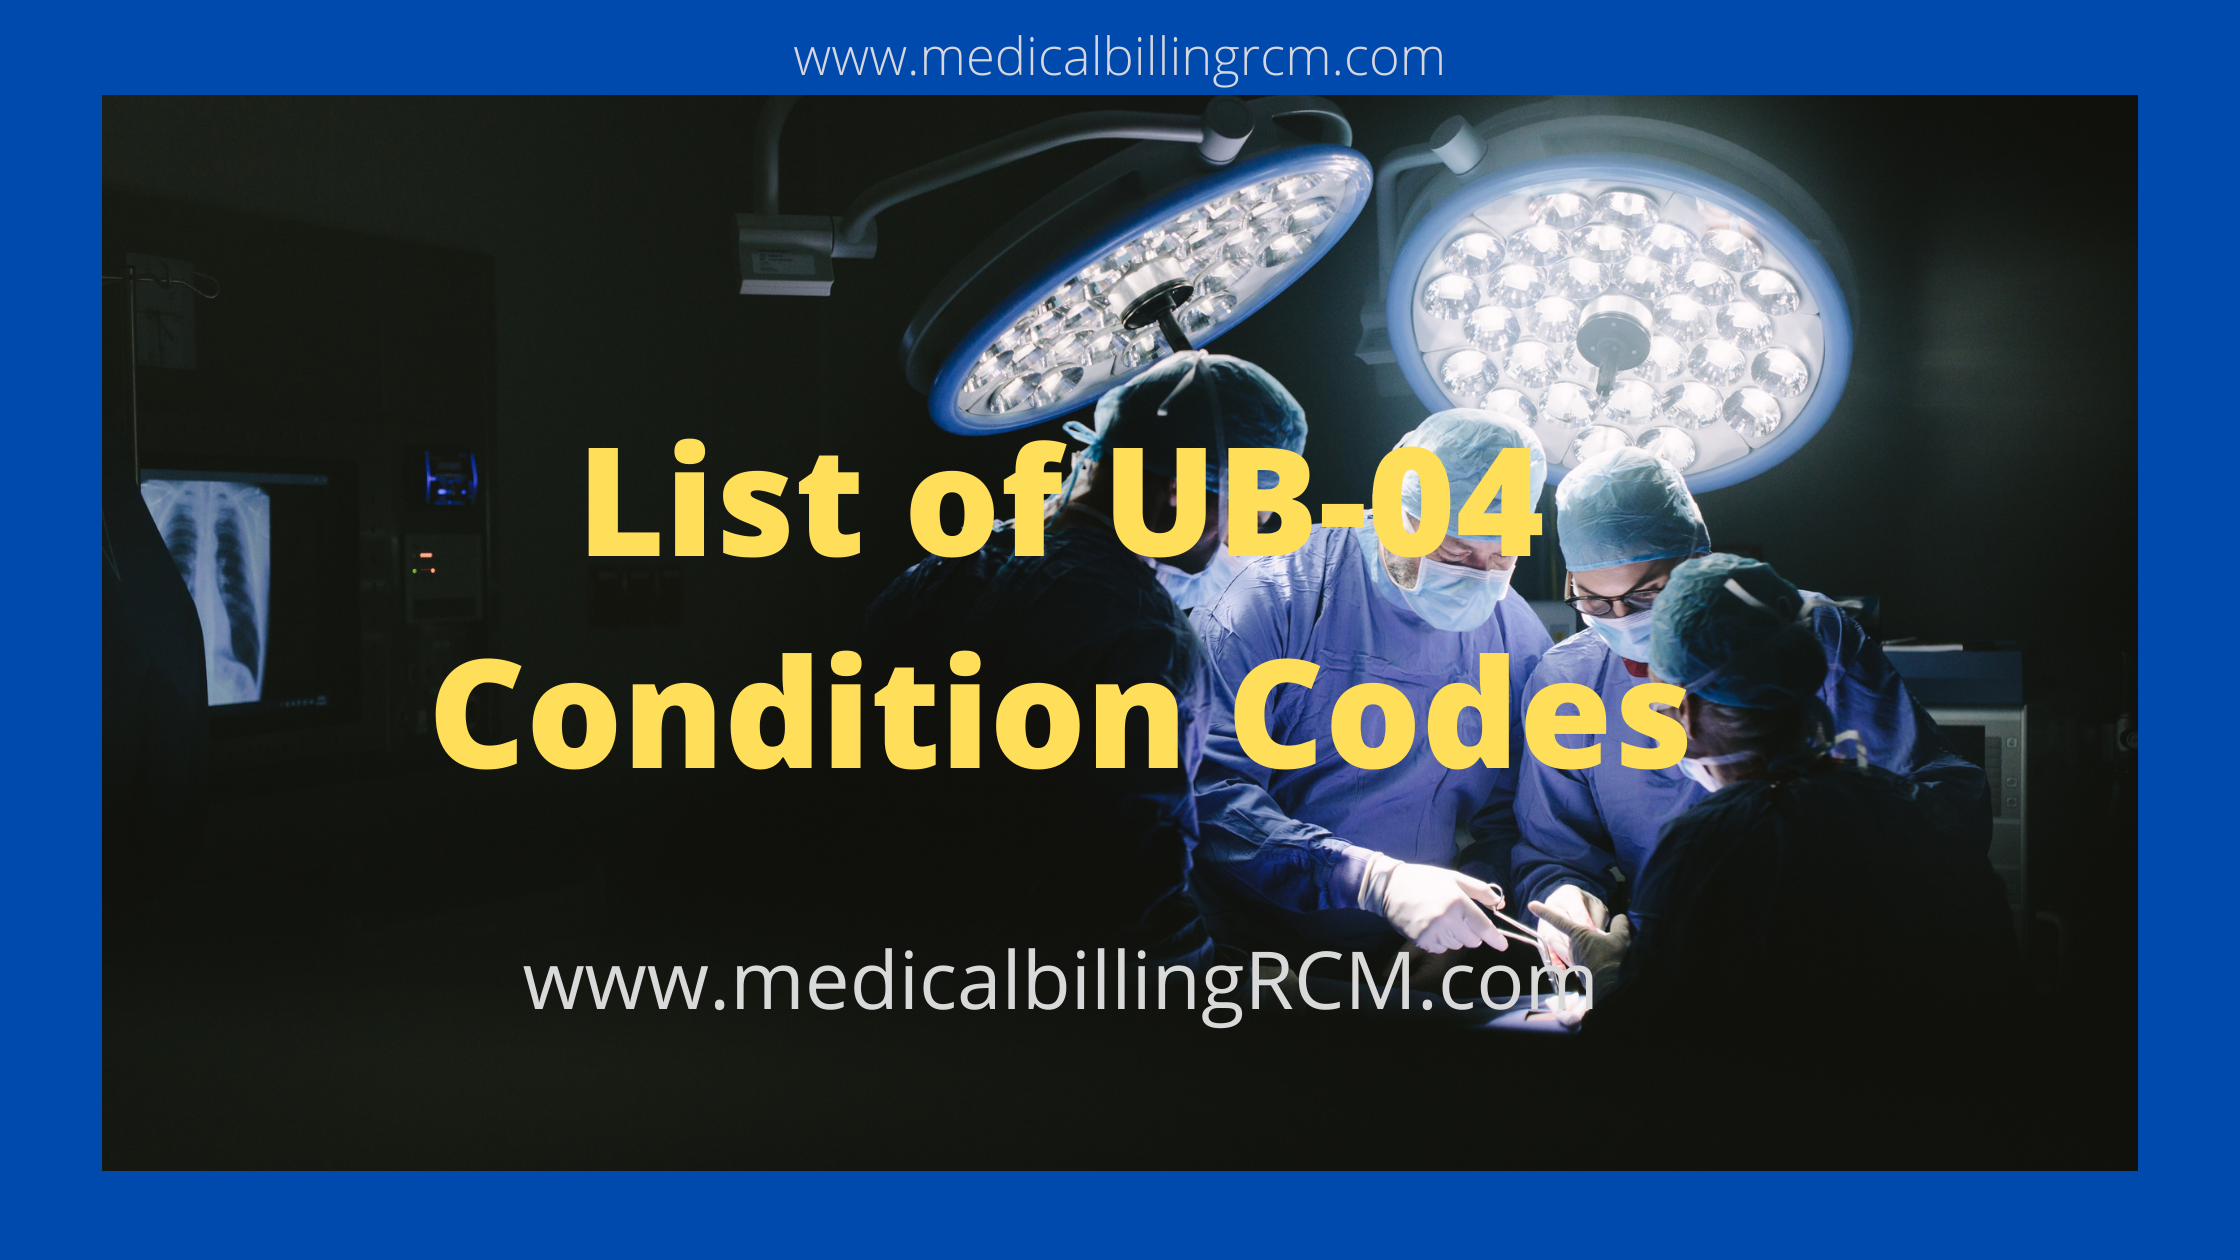 UB 04 condition codes list in medical billing